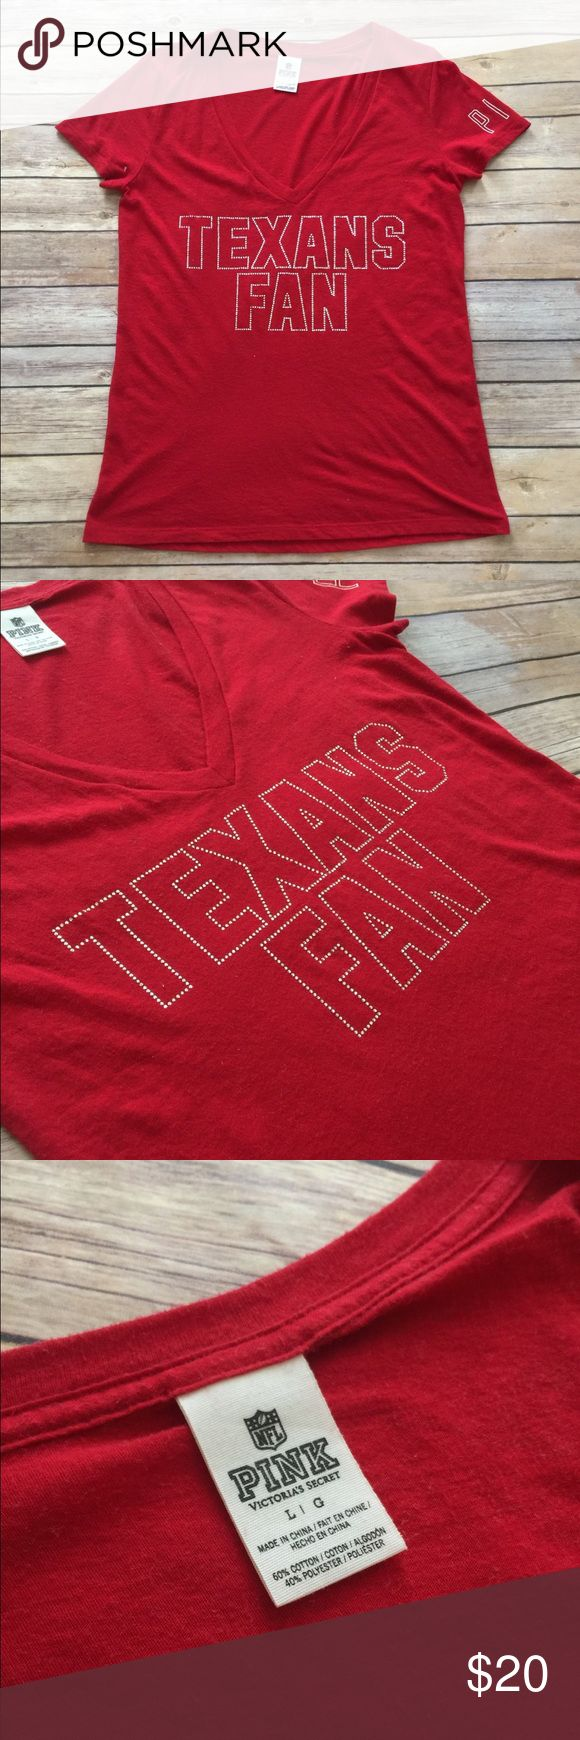 VS PINK Houston Texans Tee EUC. Size large, fitted. TTS. Tops Tees - Short Sleeve